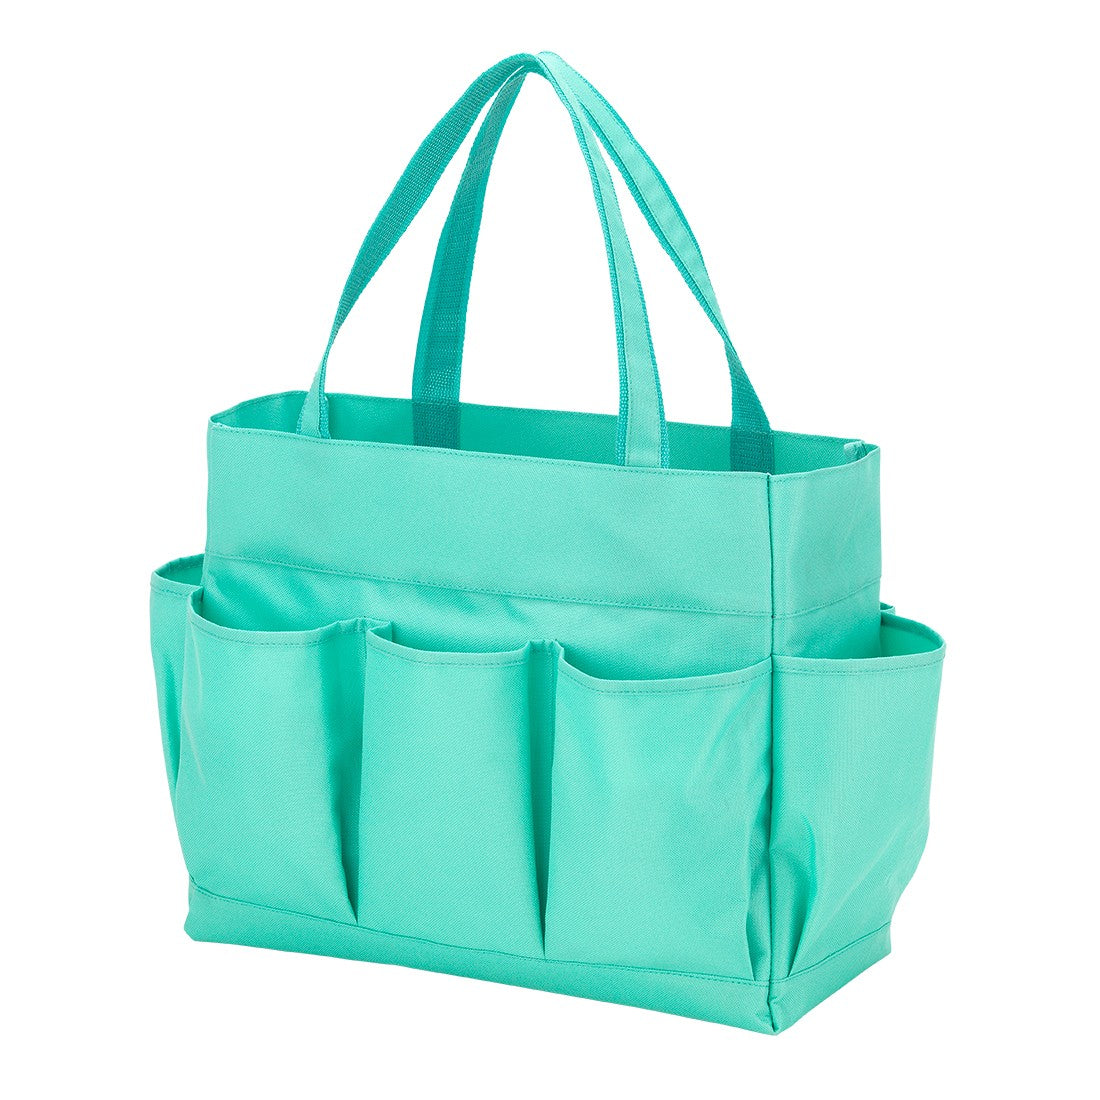 Purchase Blank or Personalized - kkgivingtree - Mint Carry All Bag - K&K's Giving Tree